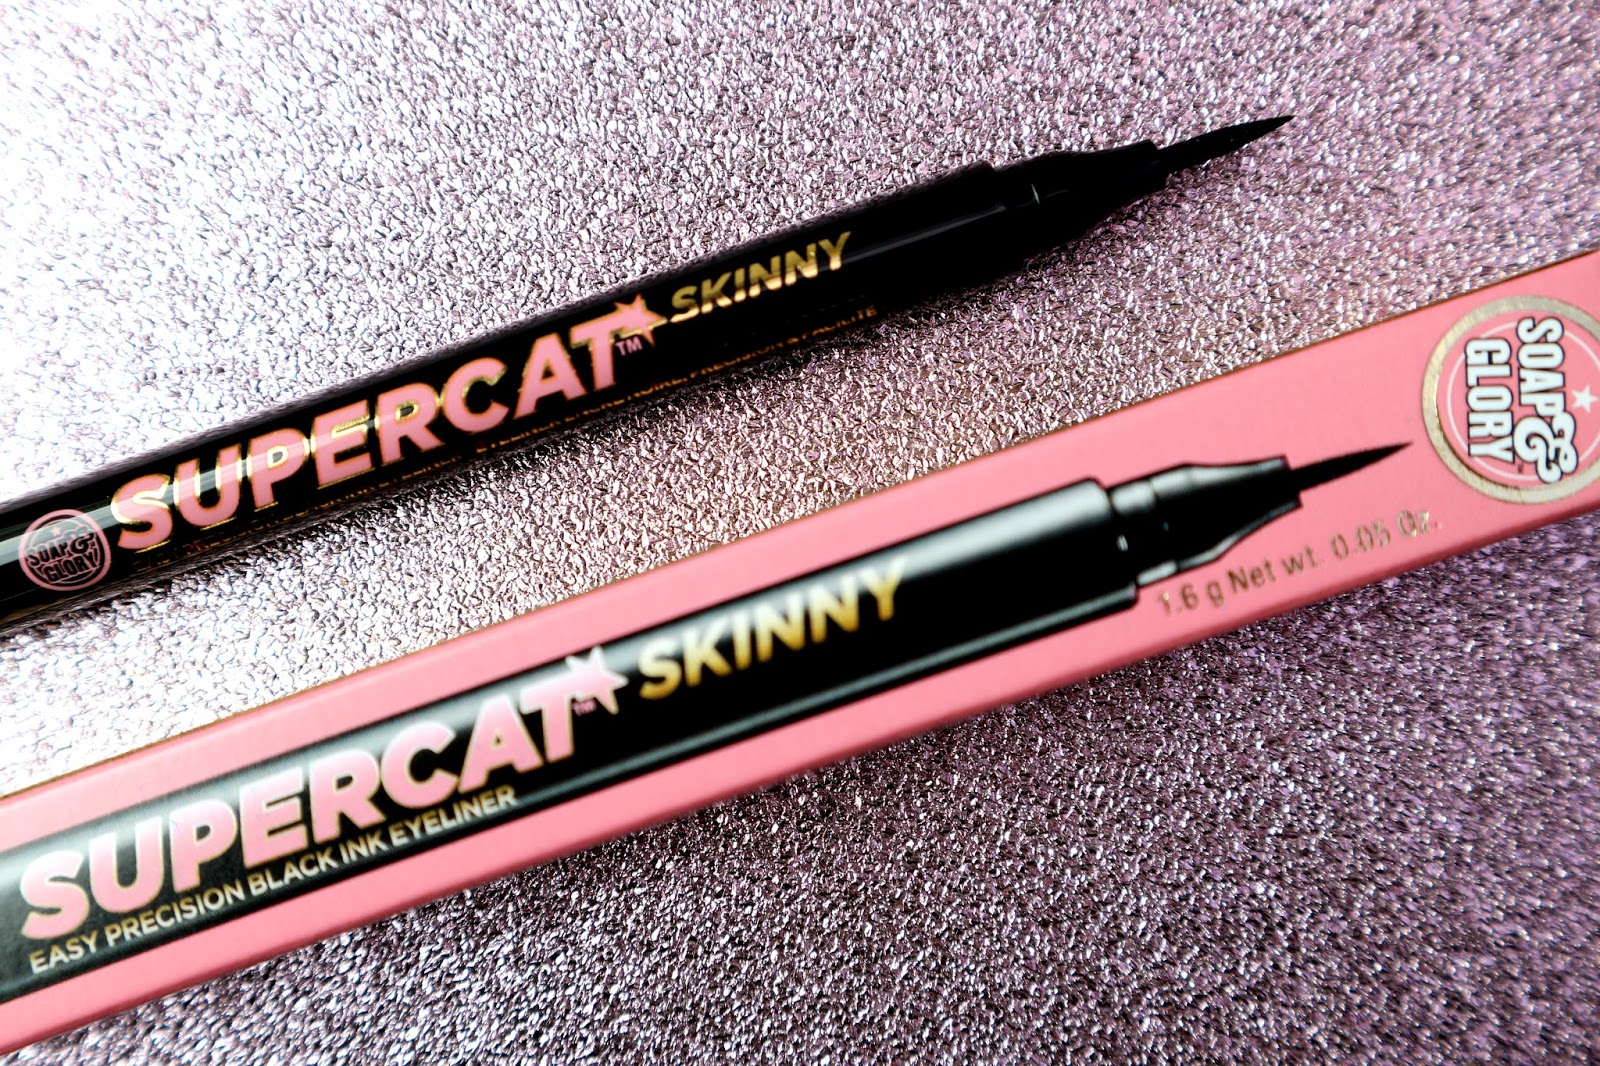 Soap & Glory Supercat Skinny Eyeliner